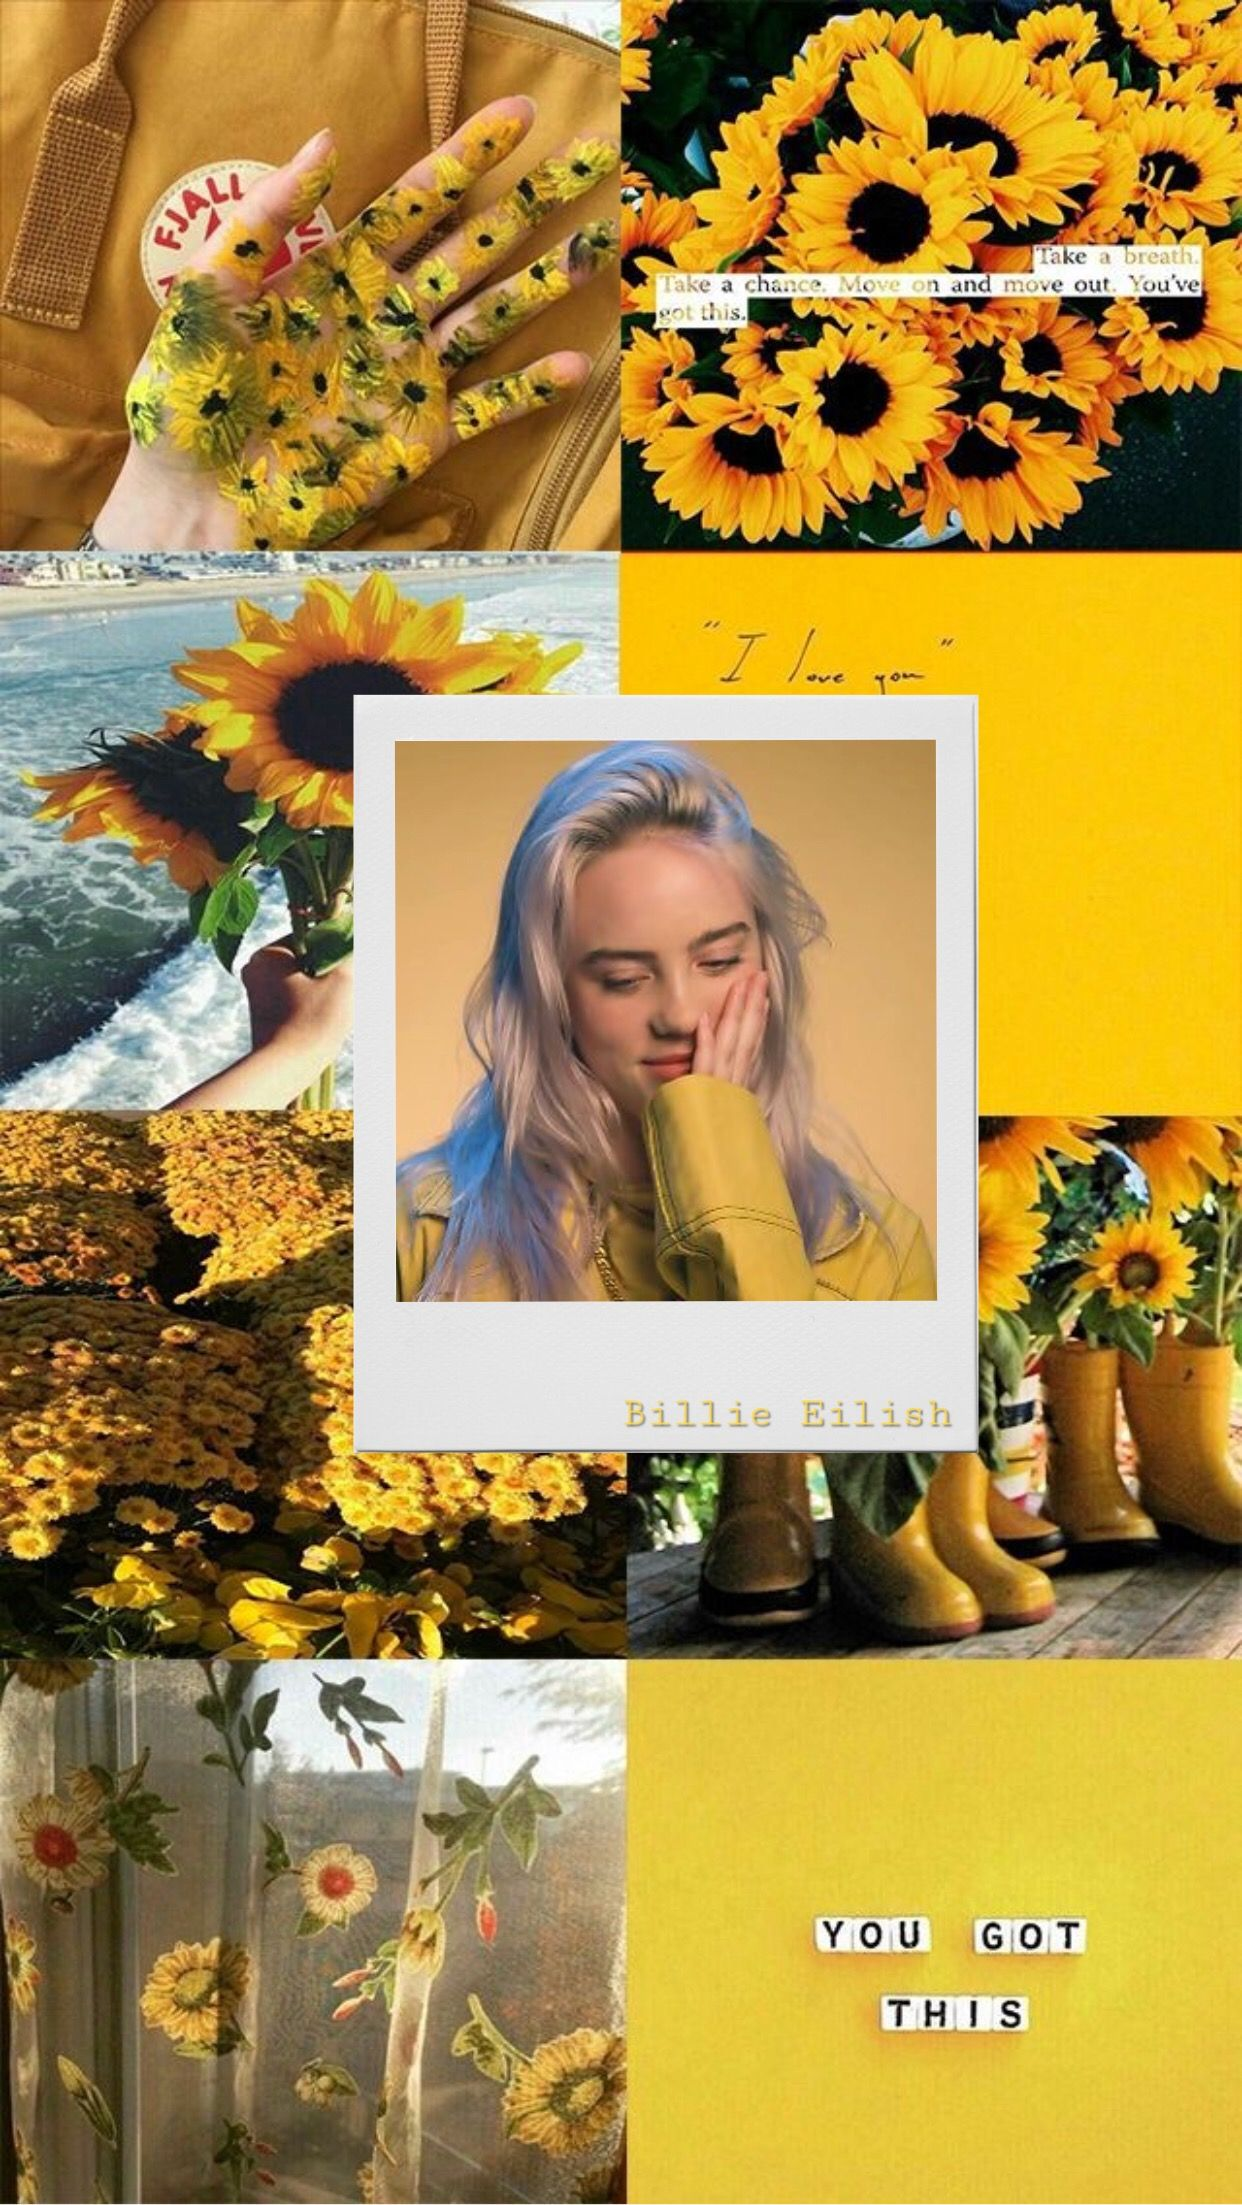 Billie Eilish Sunflower Wallpaper 3d Android Wallpaper